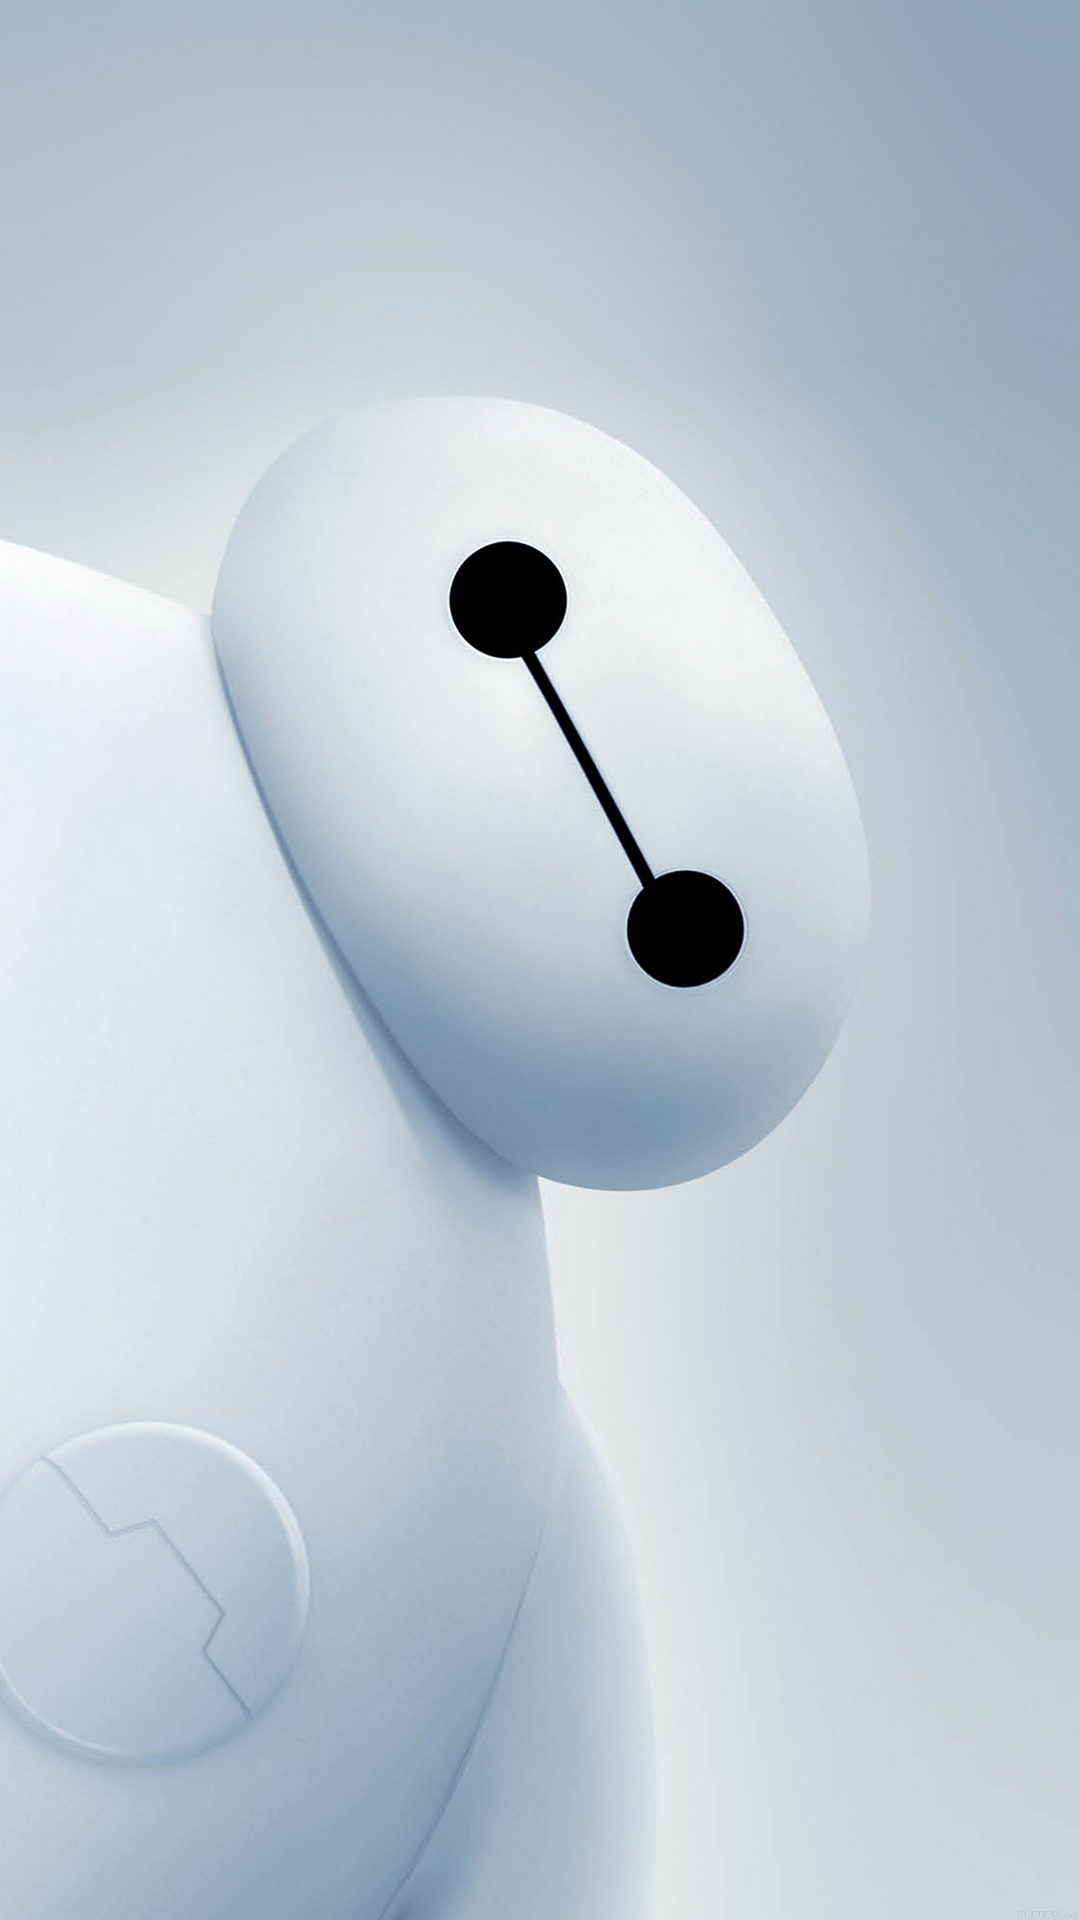 Big hero 6 - Best htc one wallpapers, free and easy to ...